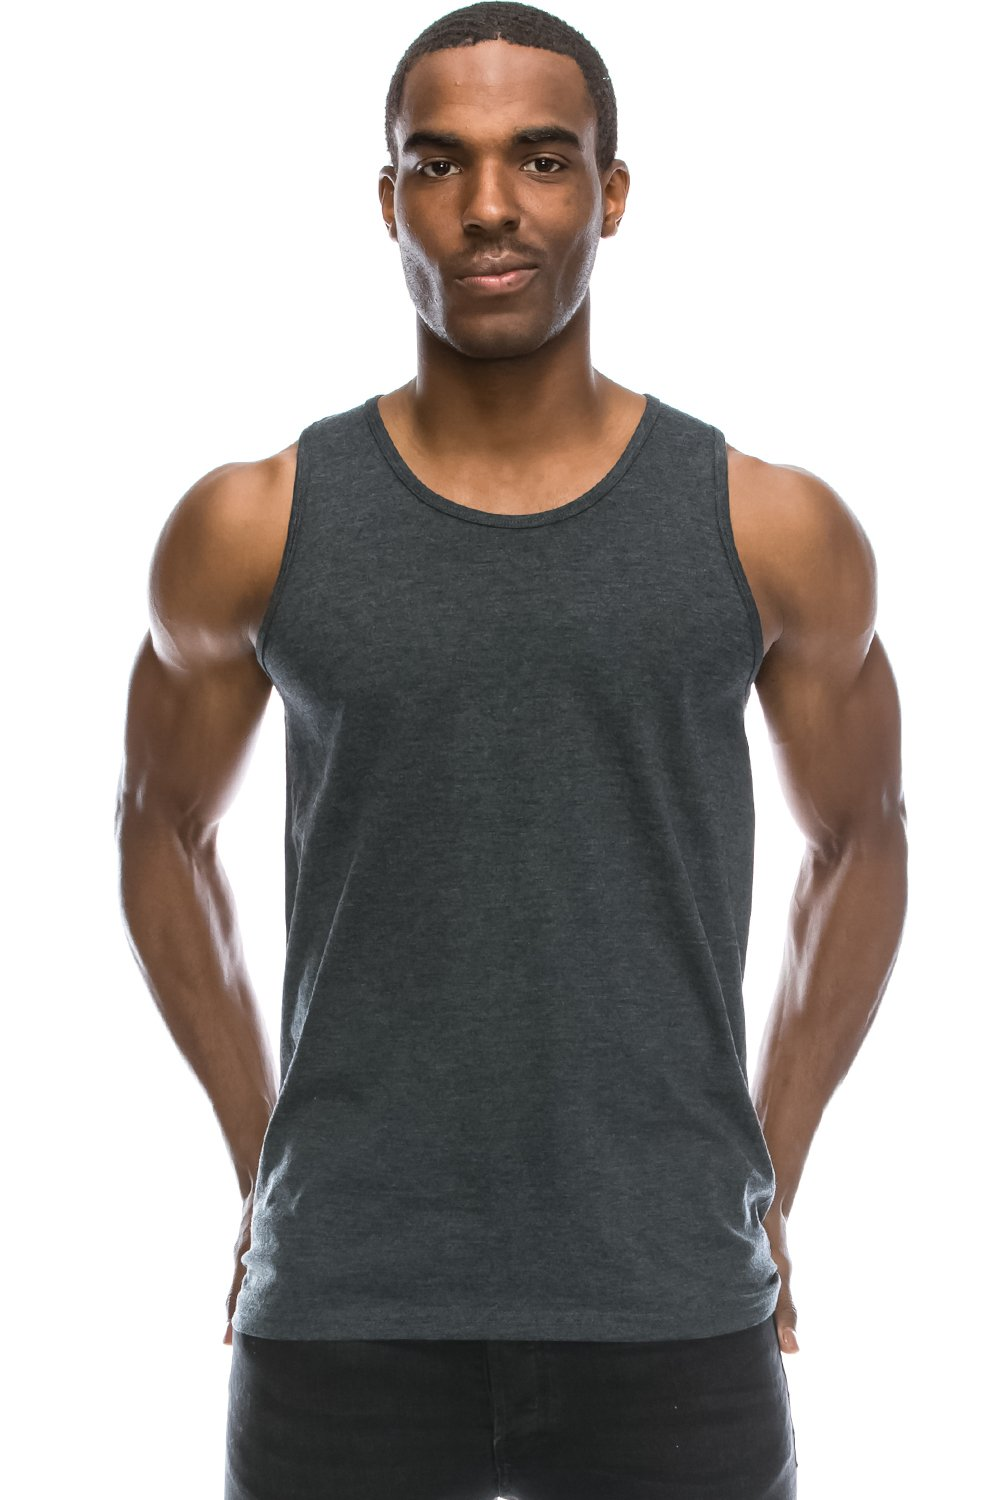 JC DISTRO Mens Hipster Hip Hop Basic Running Solid Charcoal Tank Top Large